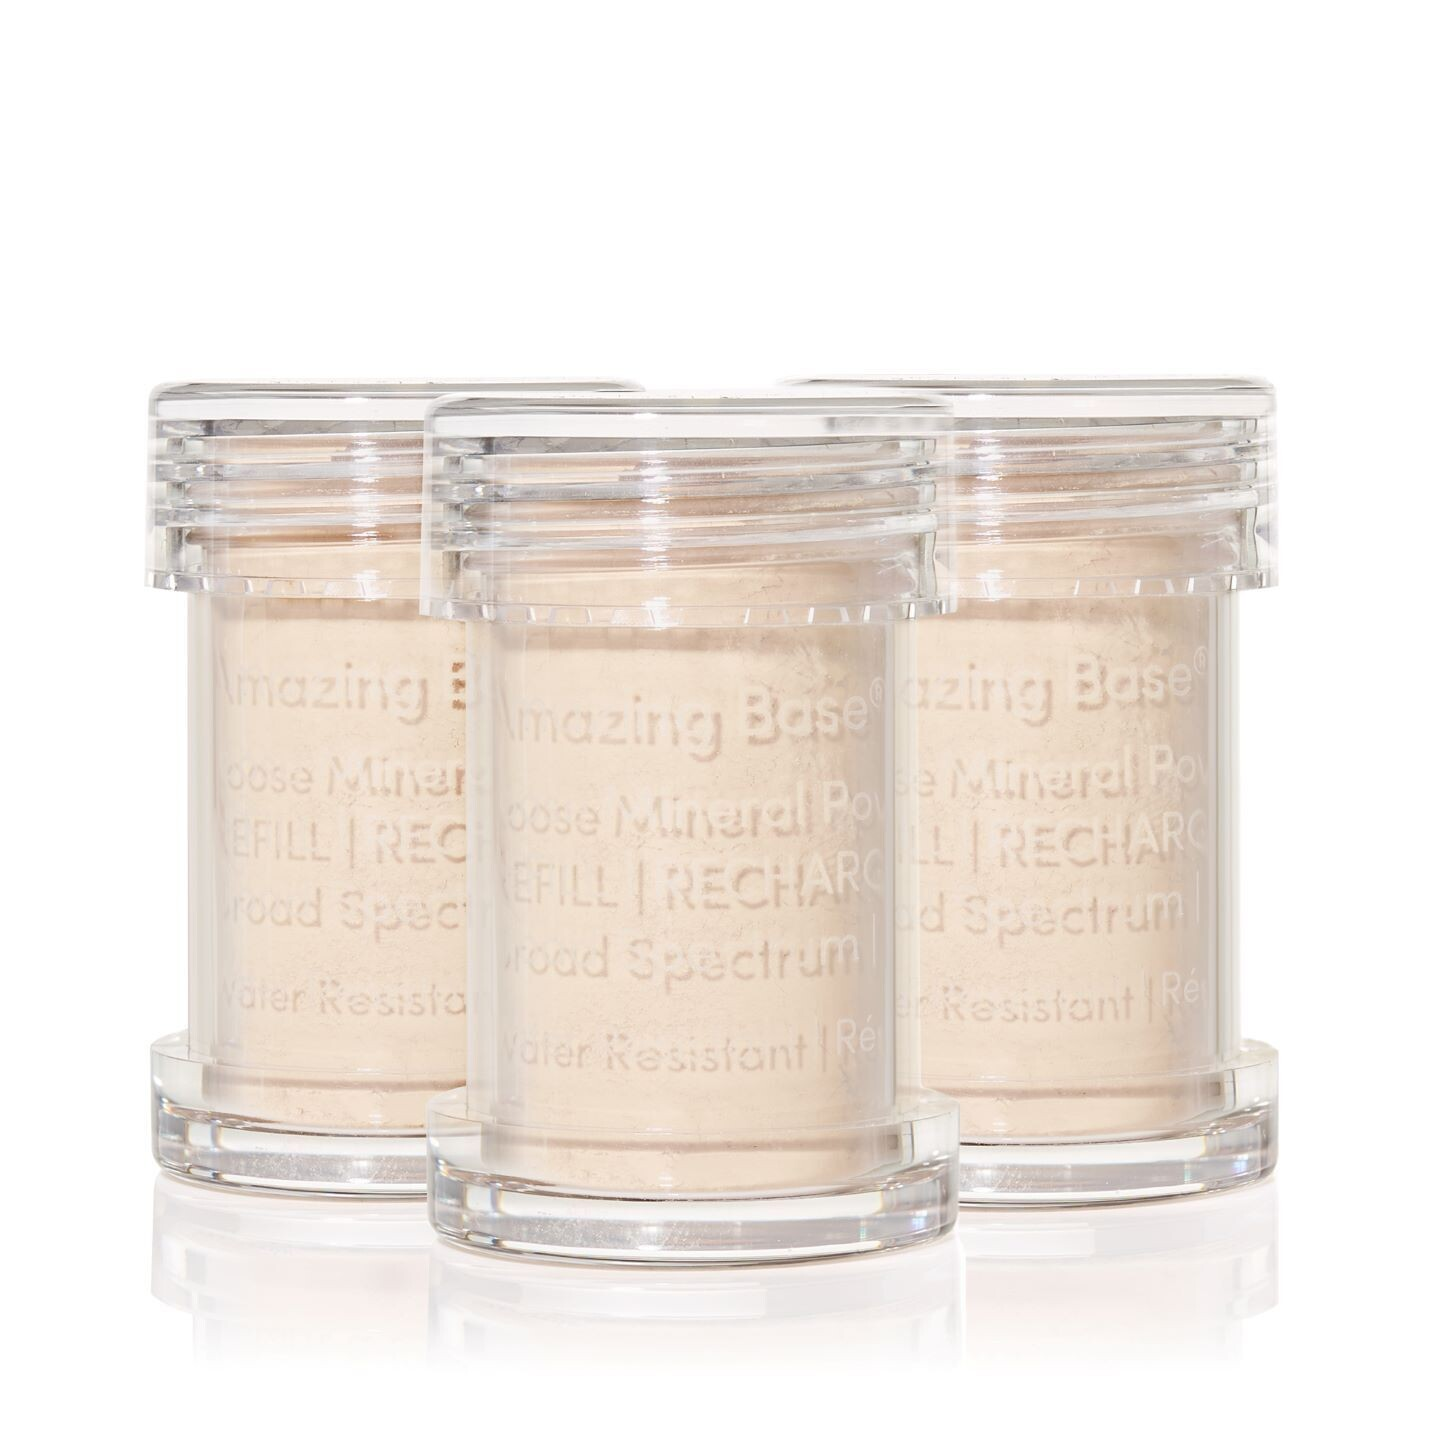 Amazing Base® Loose Mineral Powder Refill